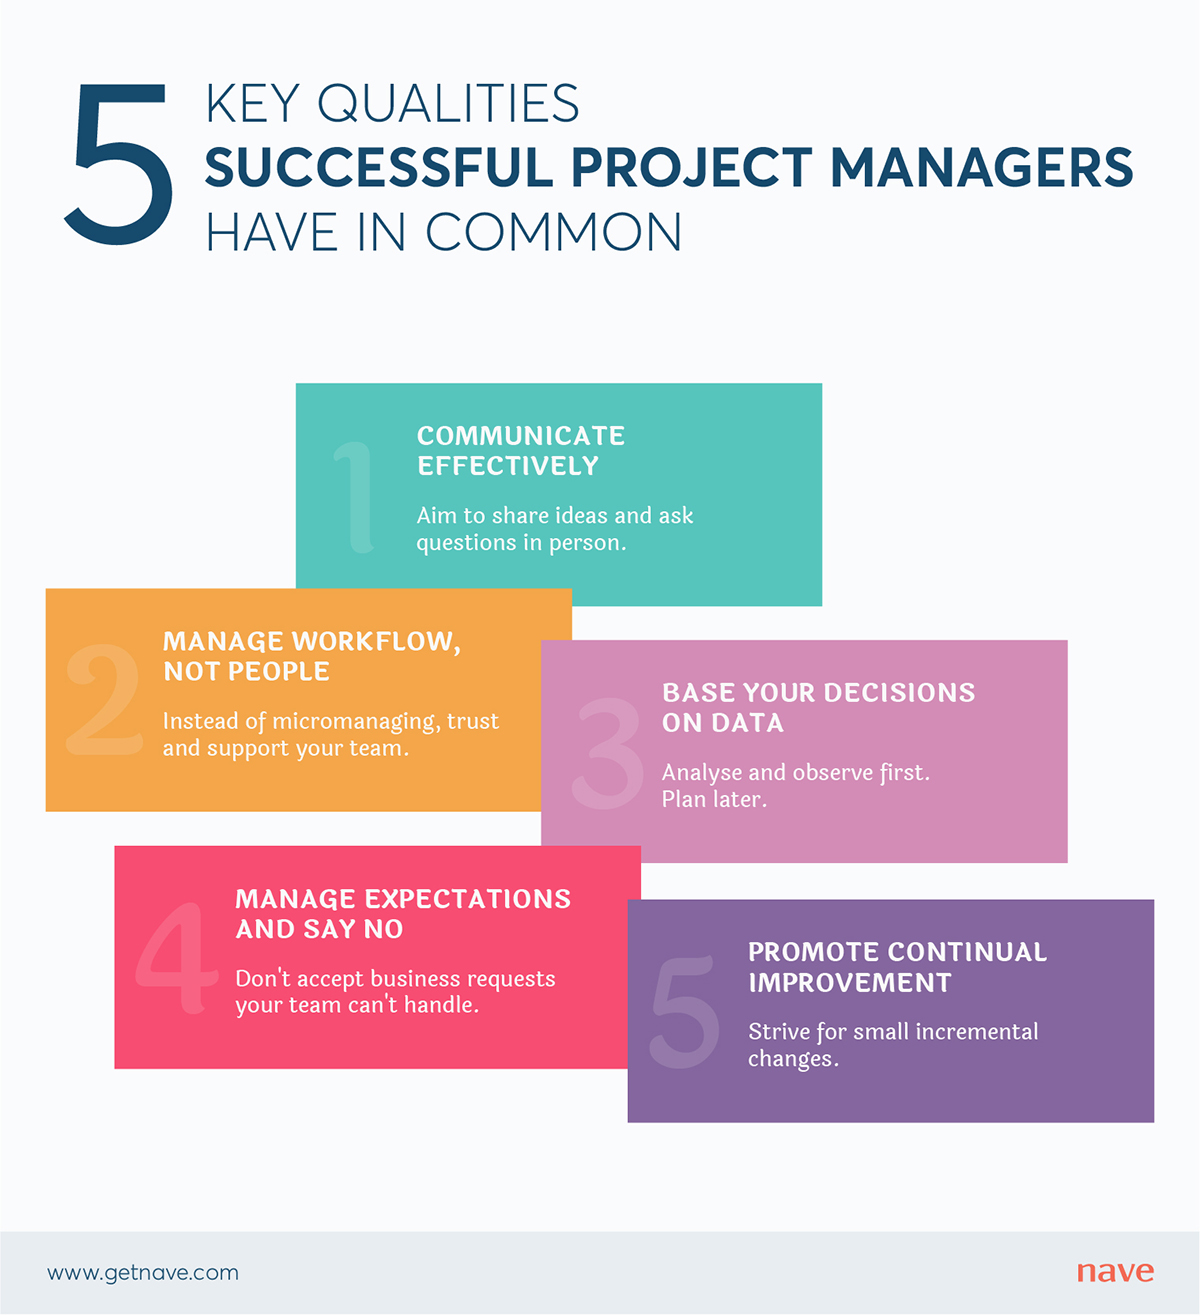 5 Key Qualities Successful Project Managers Have in Common Infographic